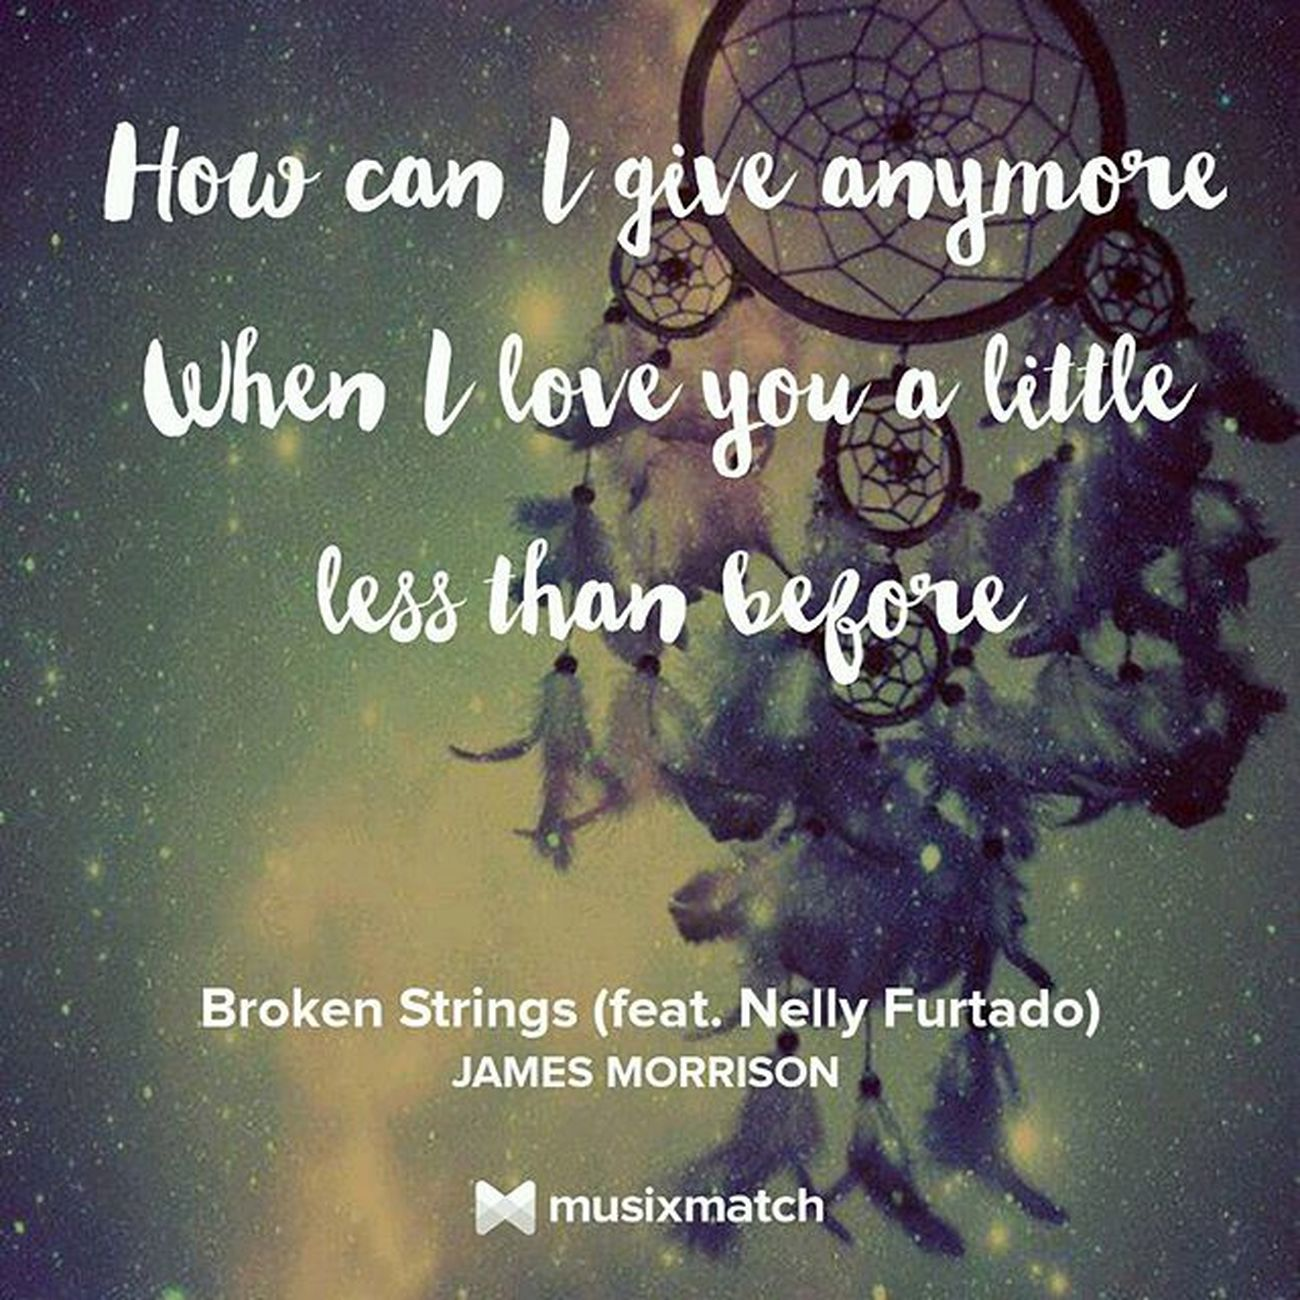 Nowplaying Musicxmatch Brokenstrings Jamesmorrison Nellyfurtado Memories